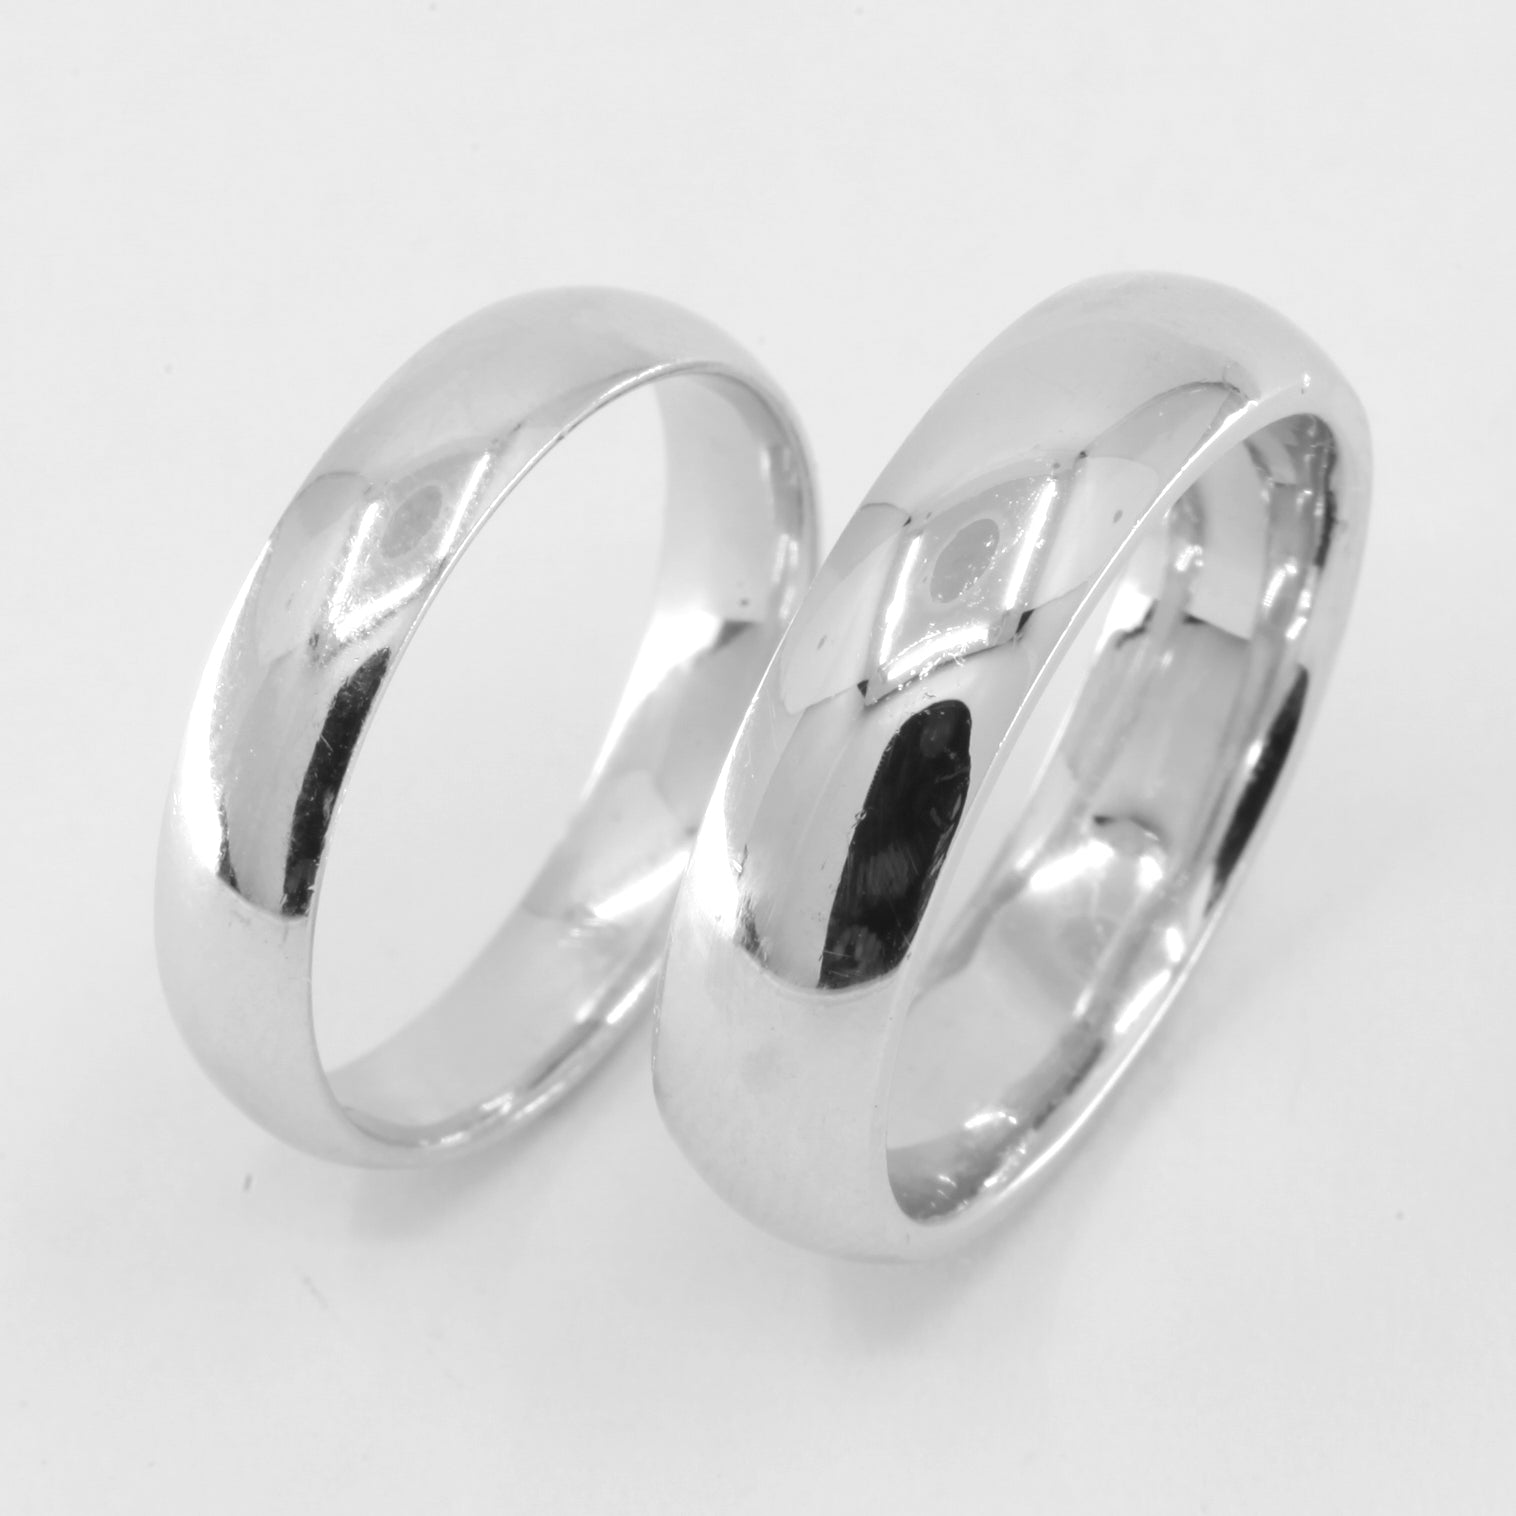 One Pair of Platinum Plain Wedding Band Rings 21.1 Grams